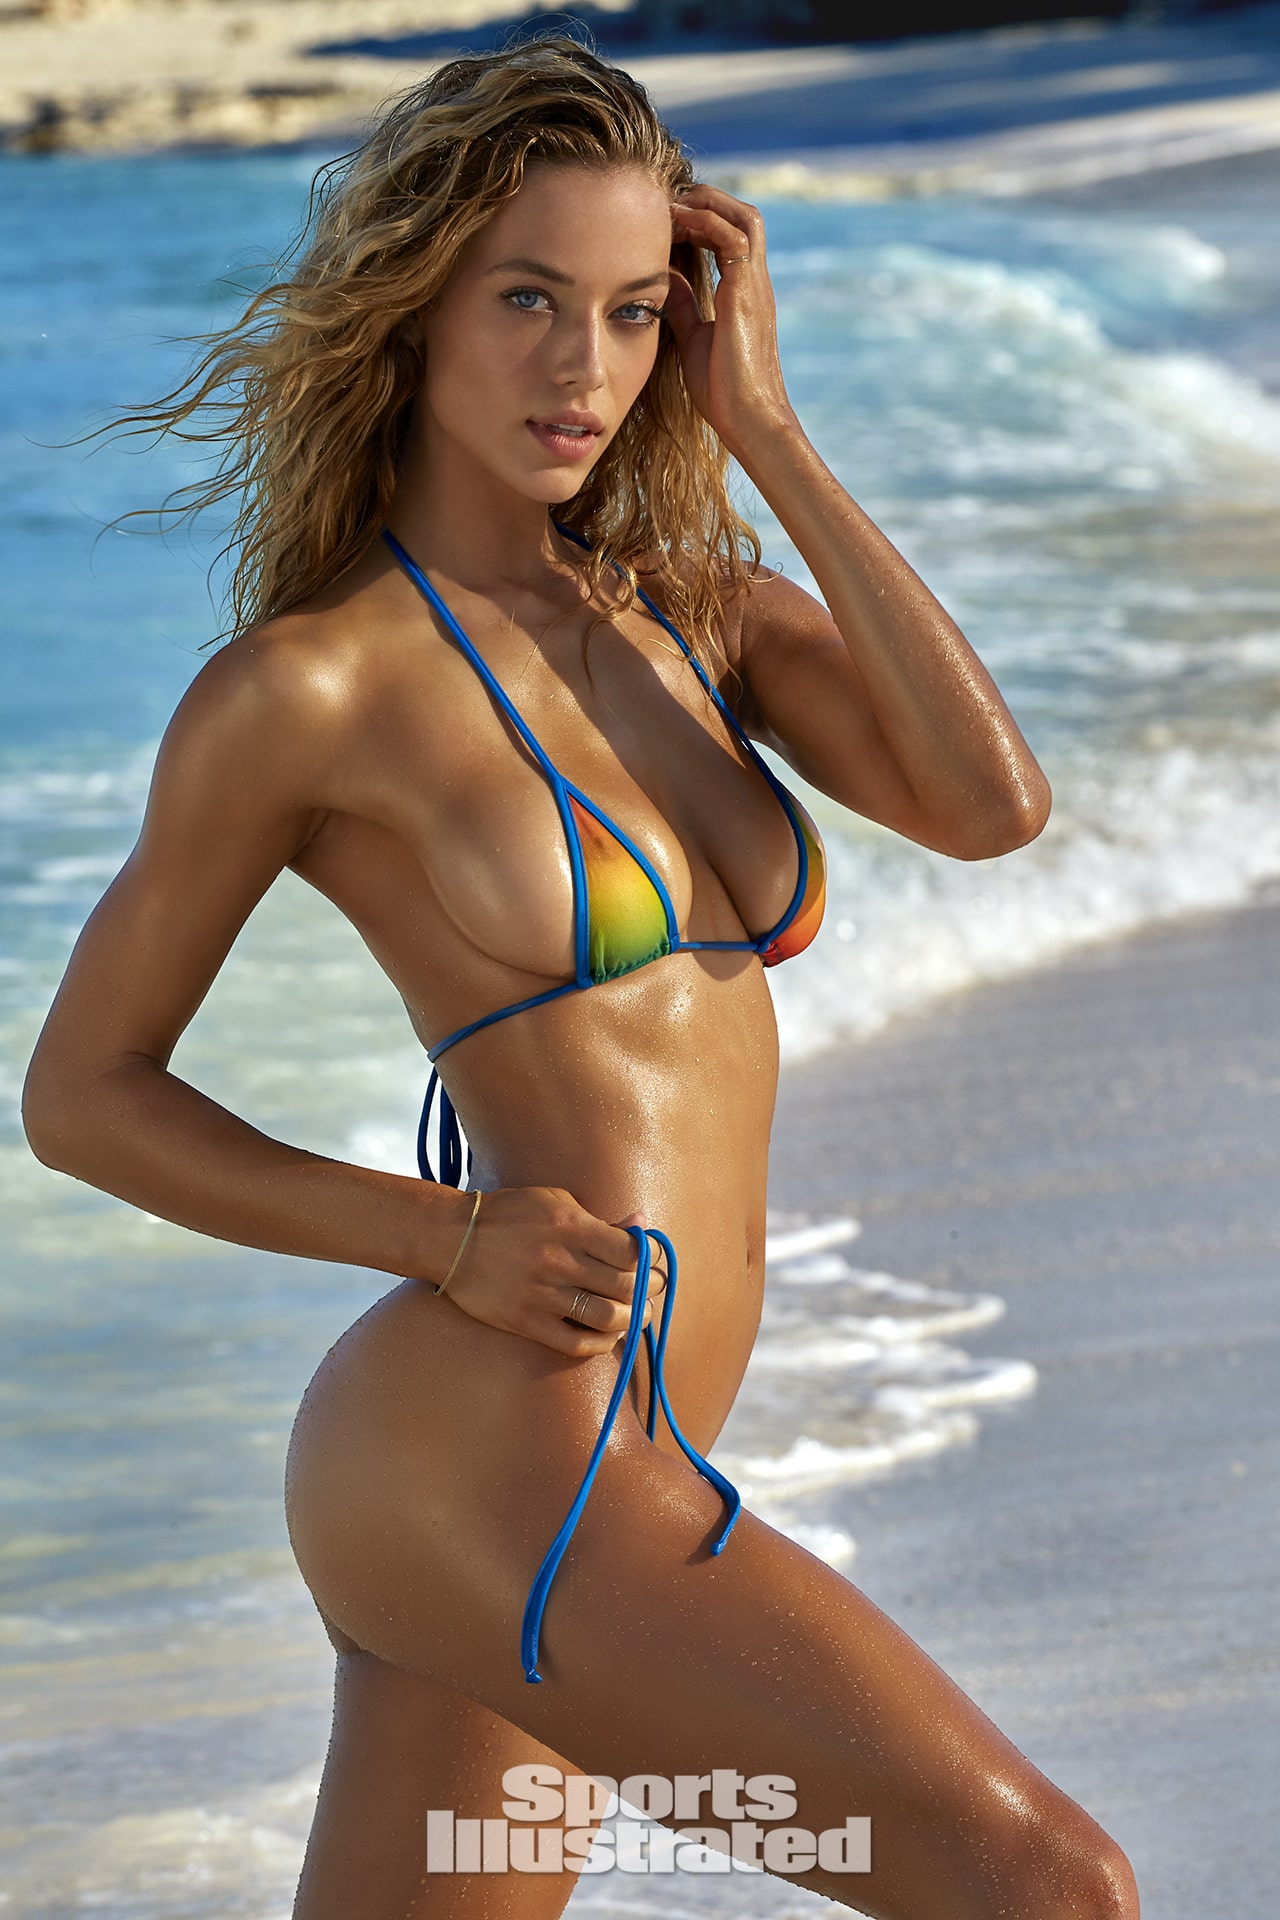 Really. hannah ferguson sports illustrated swimsuit models nude